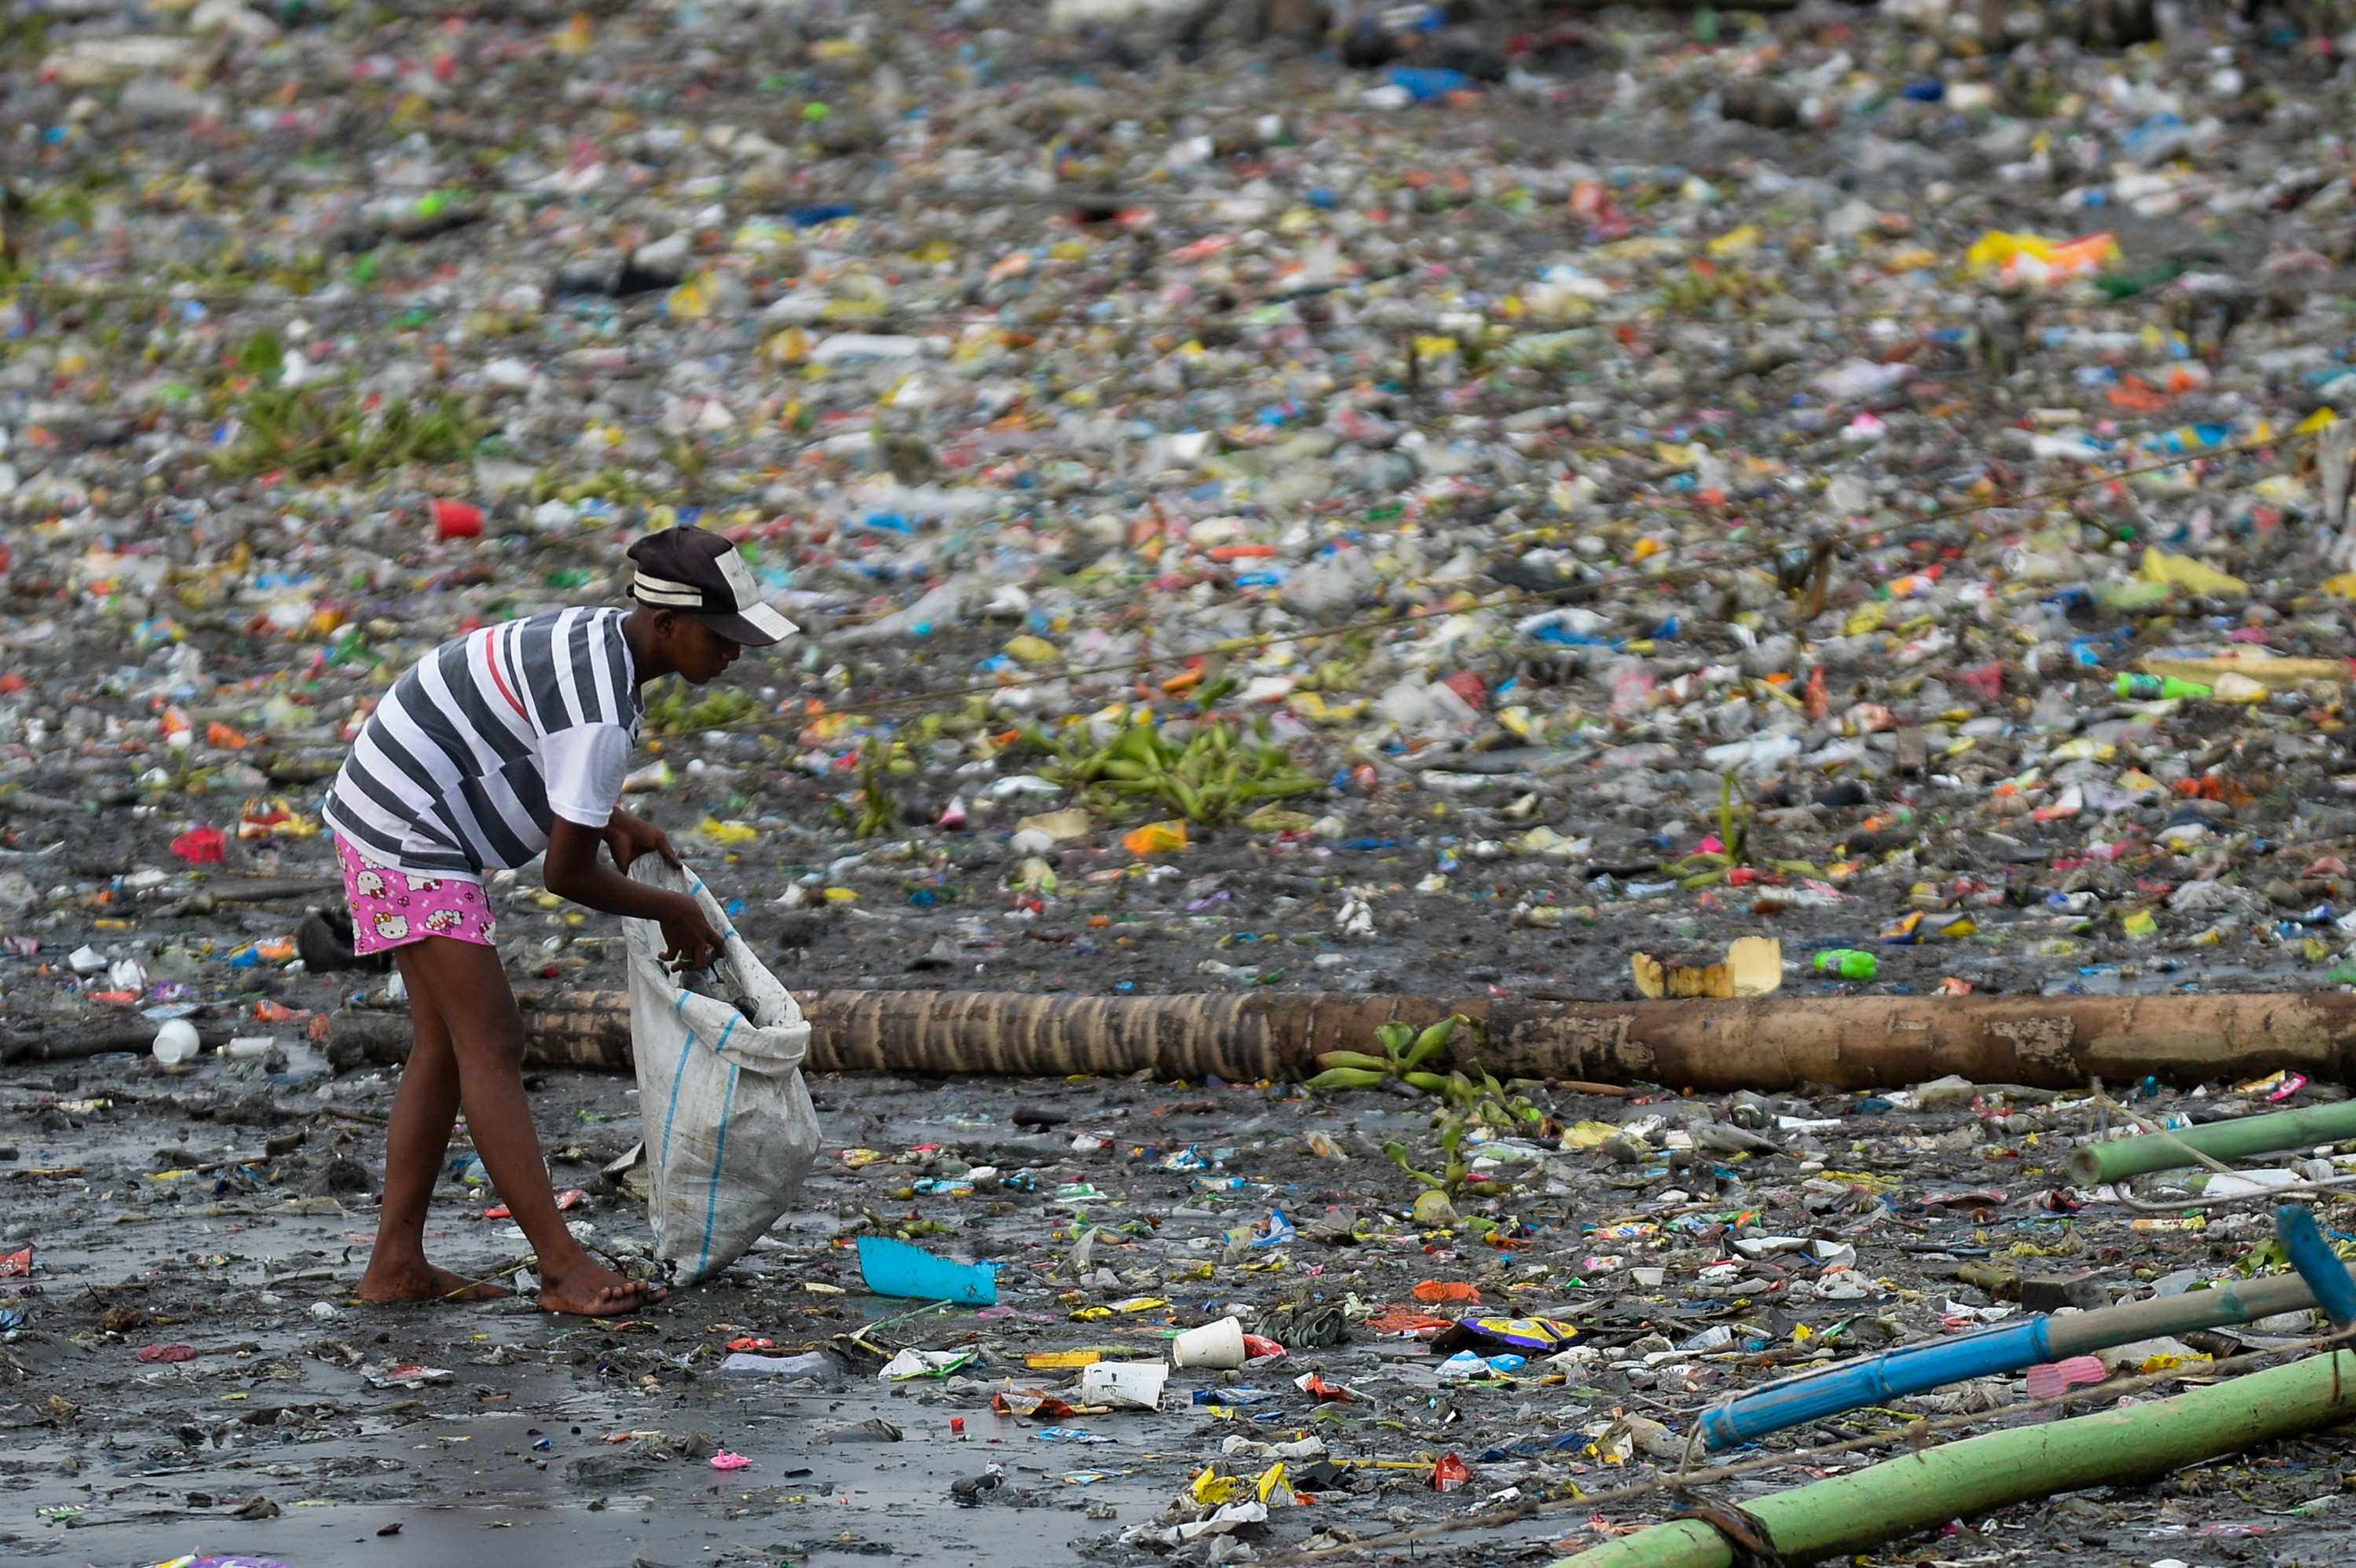 a woman picks up plastic in a heavily plastic polluted area hi-lighting the issue of plastic pollution worldwide